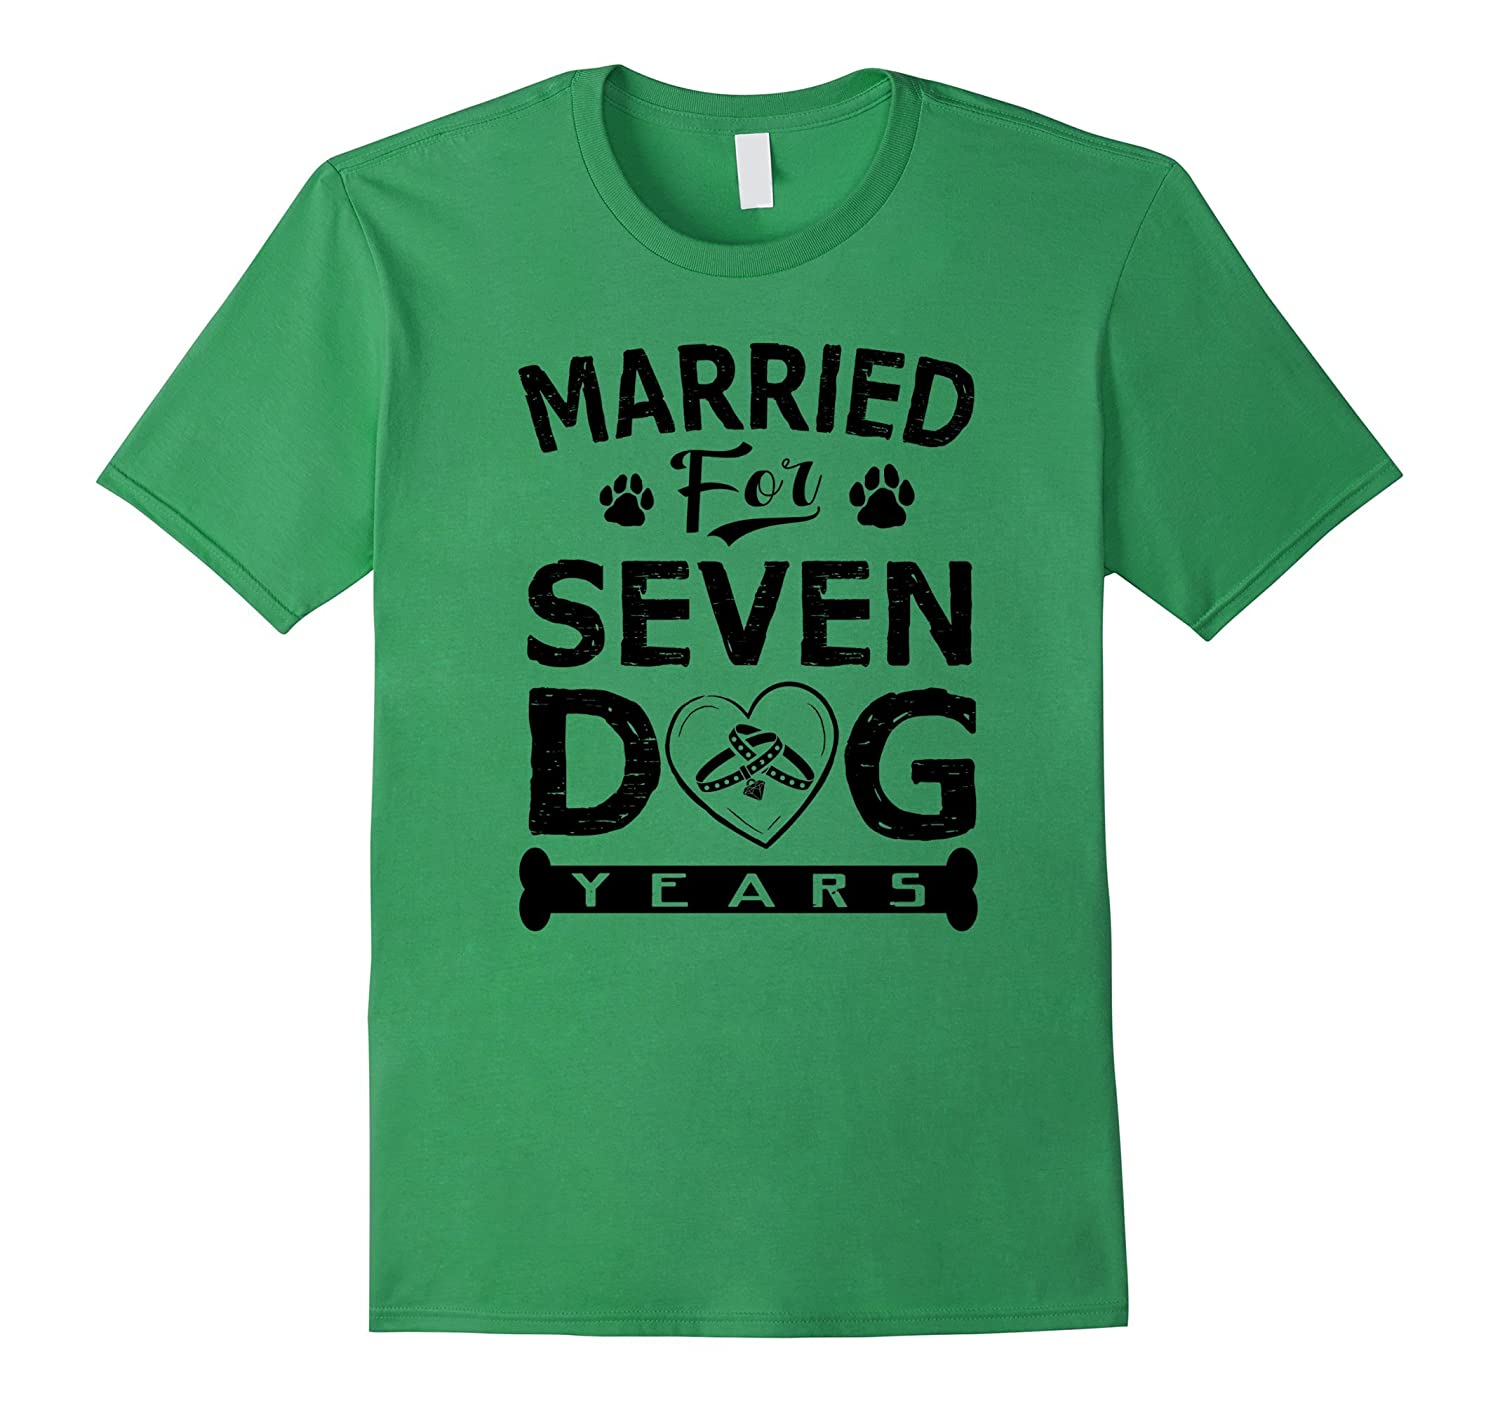 1st Wedding Anniversary Funny Shirt Married For 7 Dog Years-ANZ